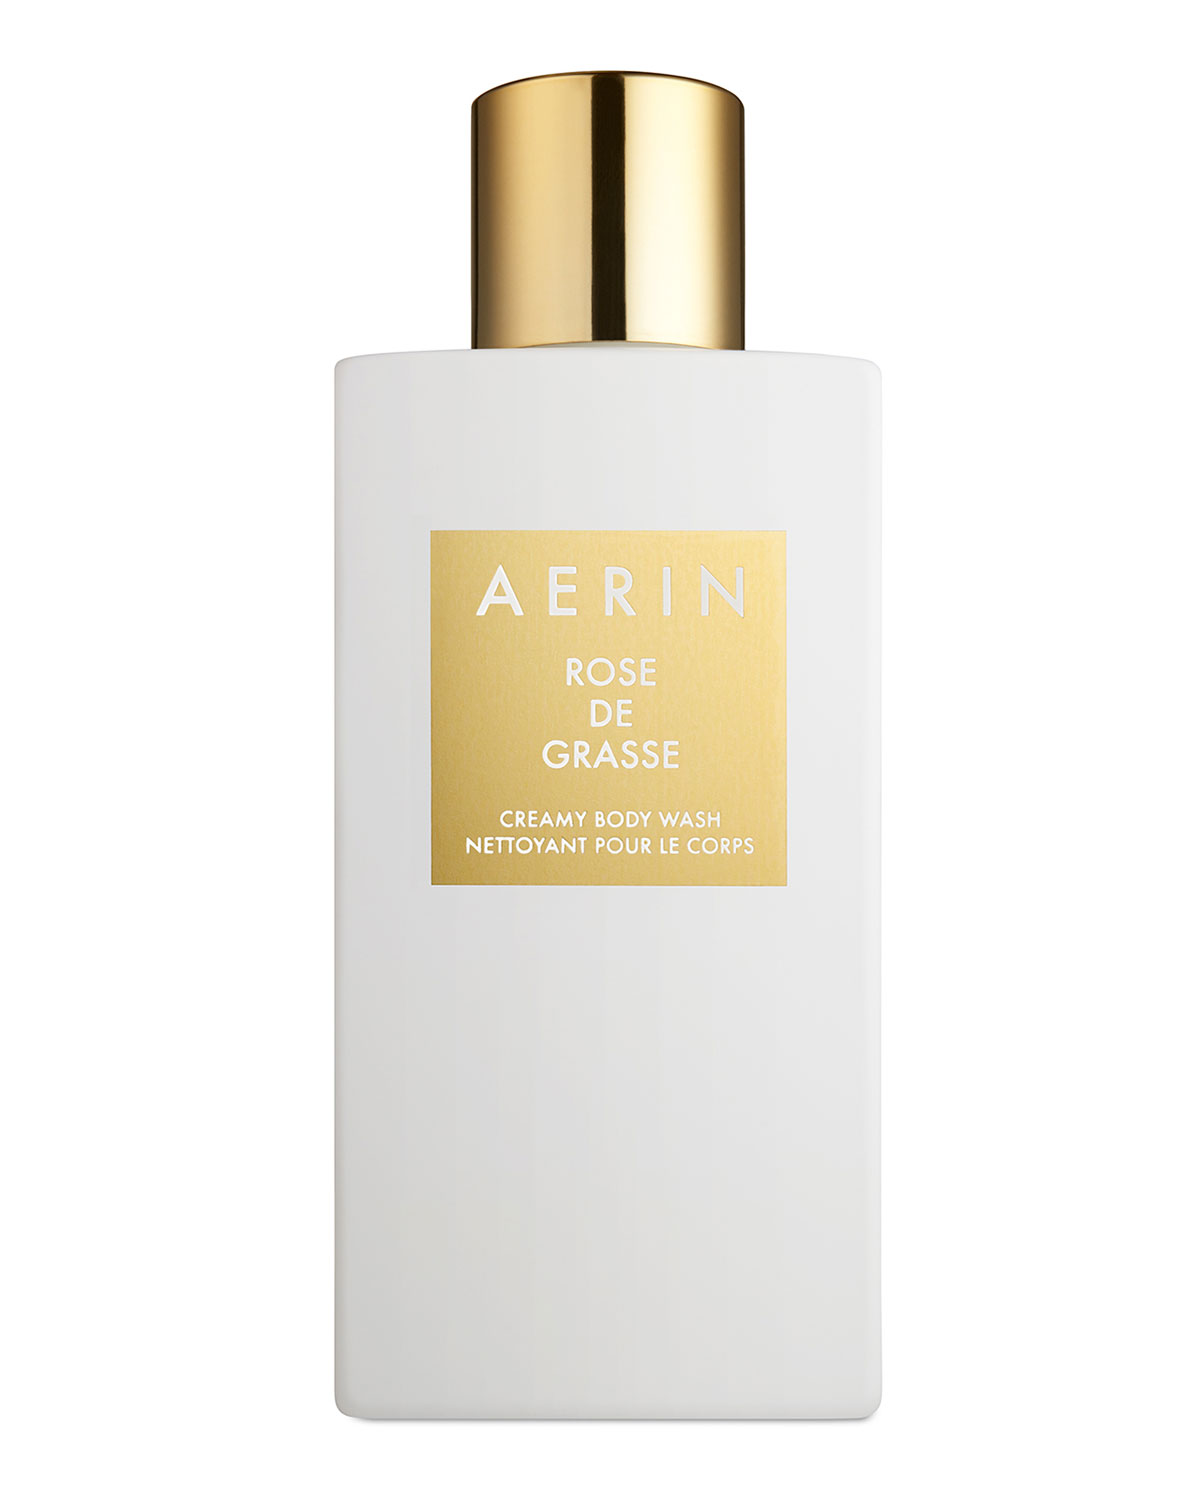 Limited Edition Rose de Grasse Body Wash, 8.4 oz. - AERIN Beauty